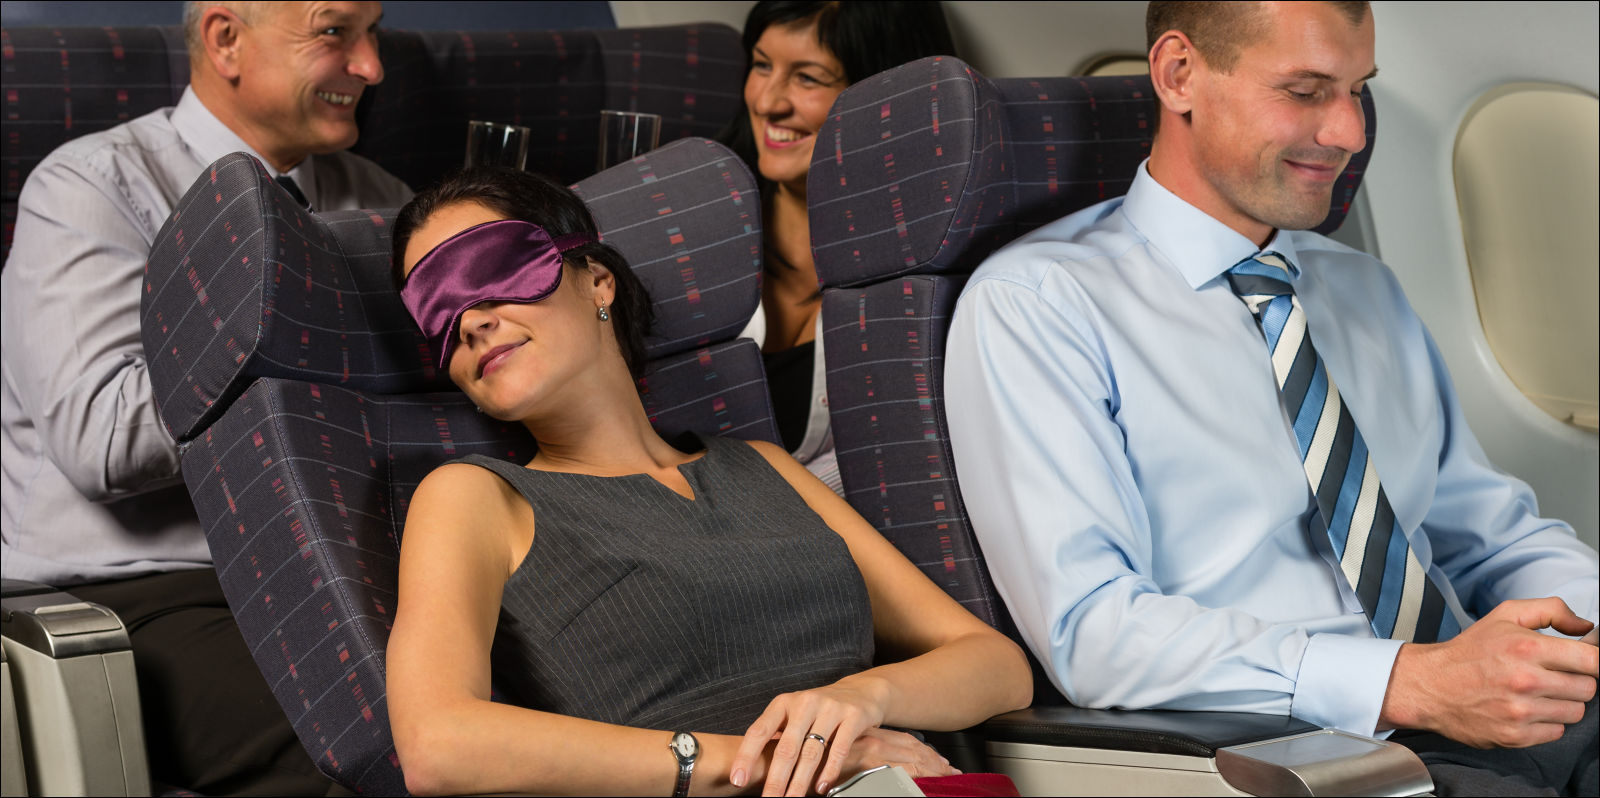 Business woman asleep during night flight among other airplane cabin passengers